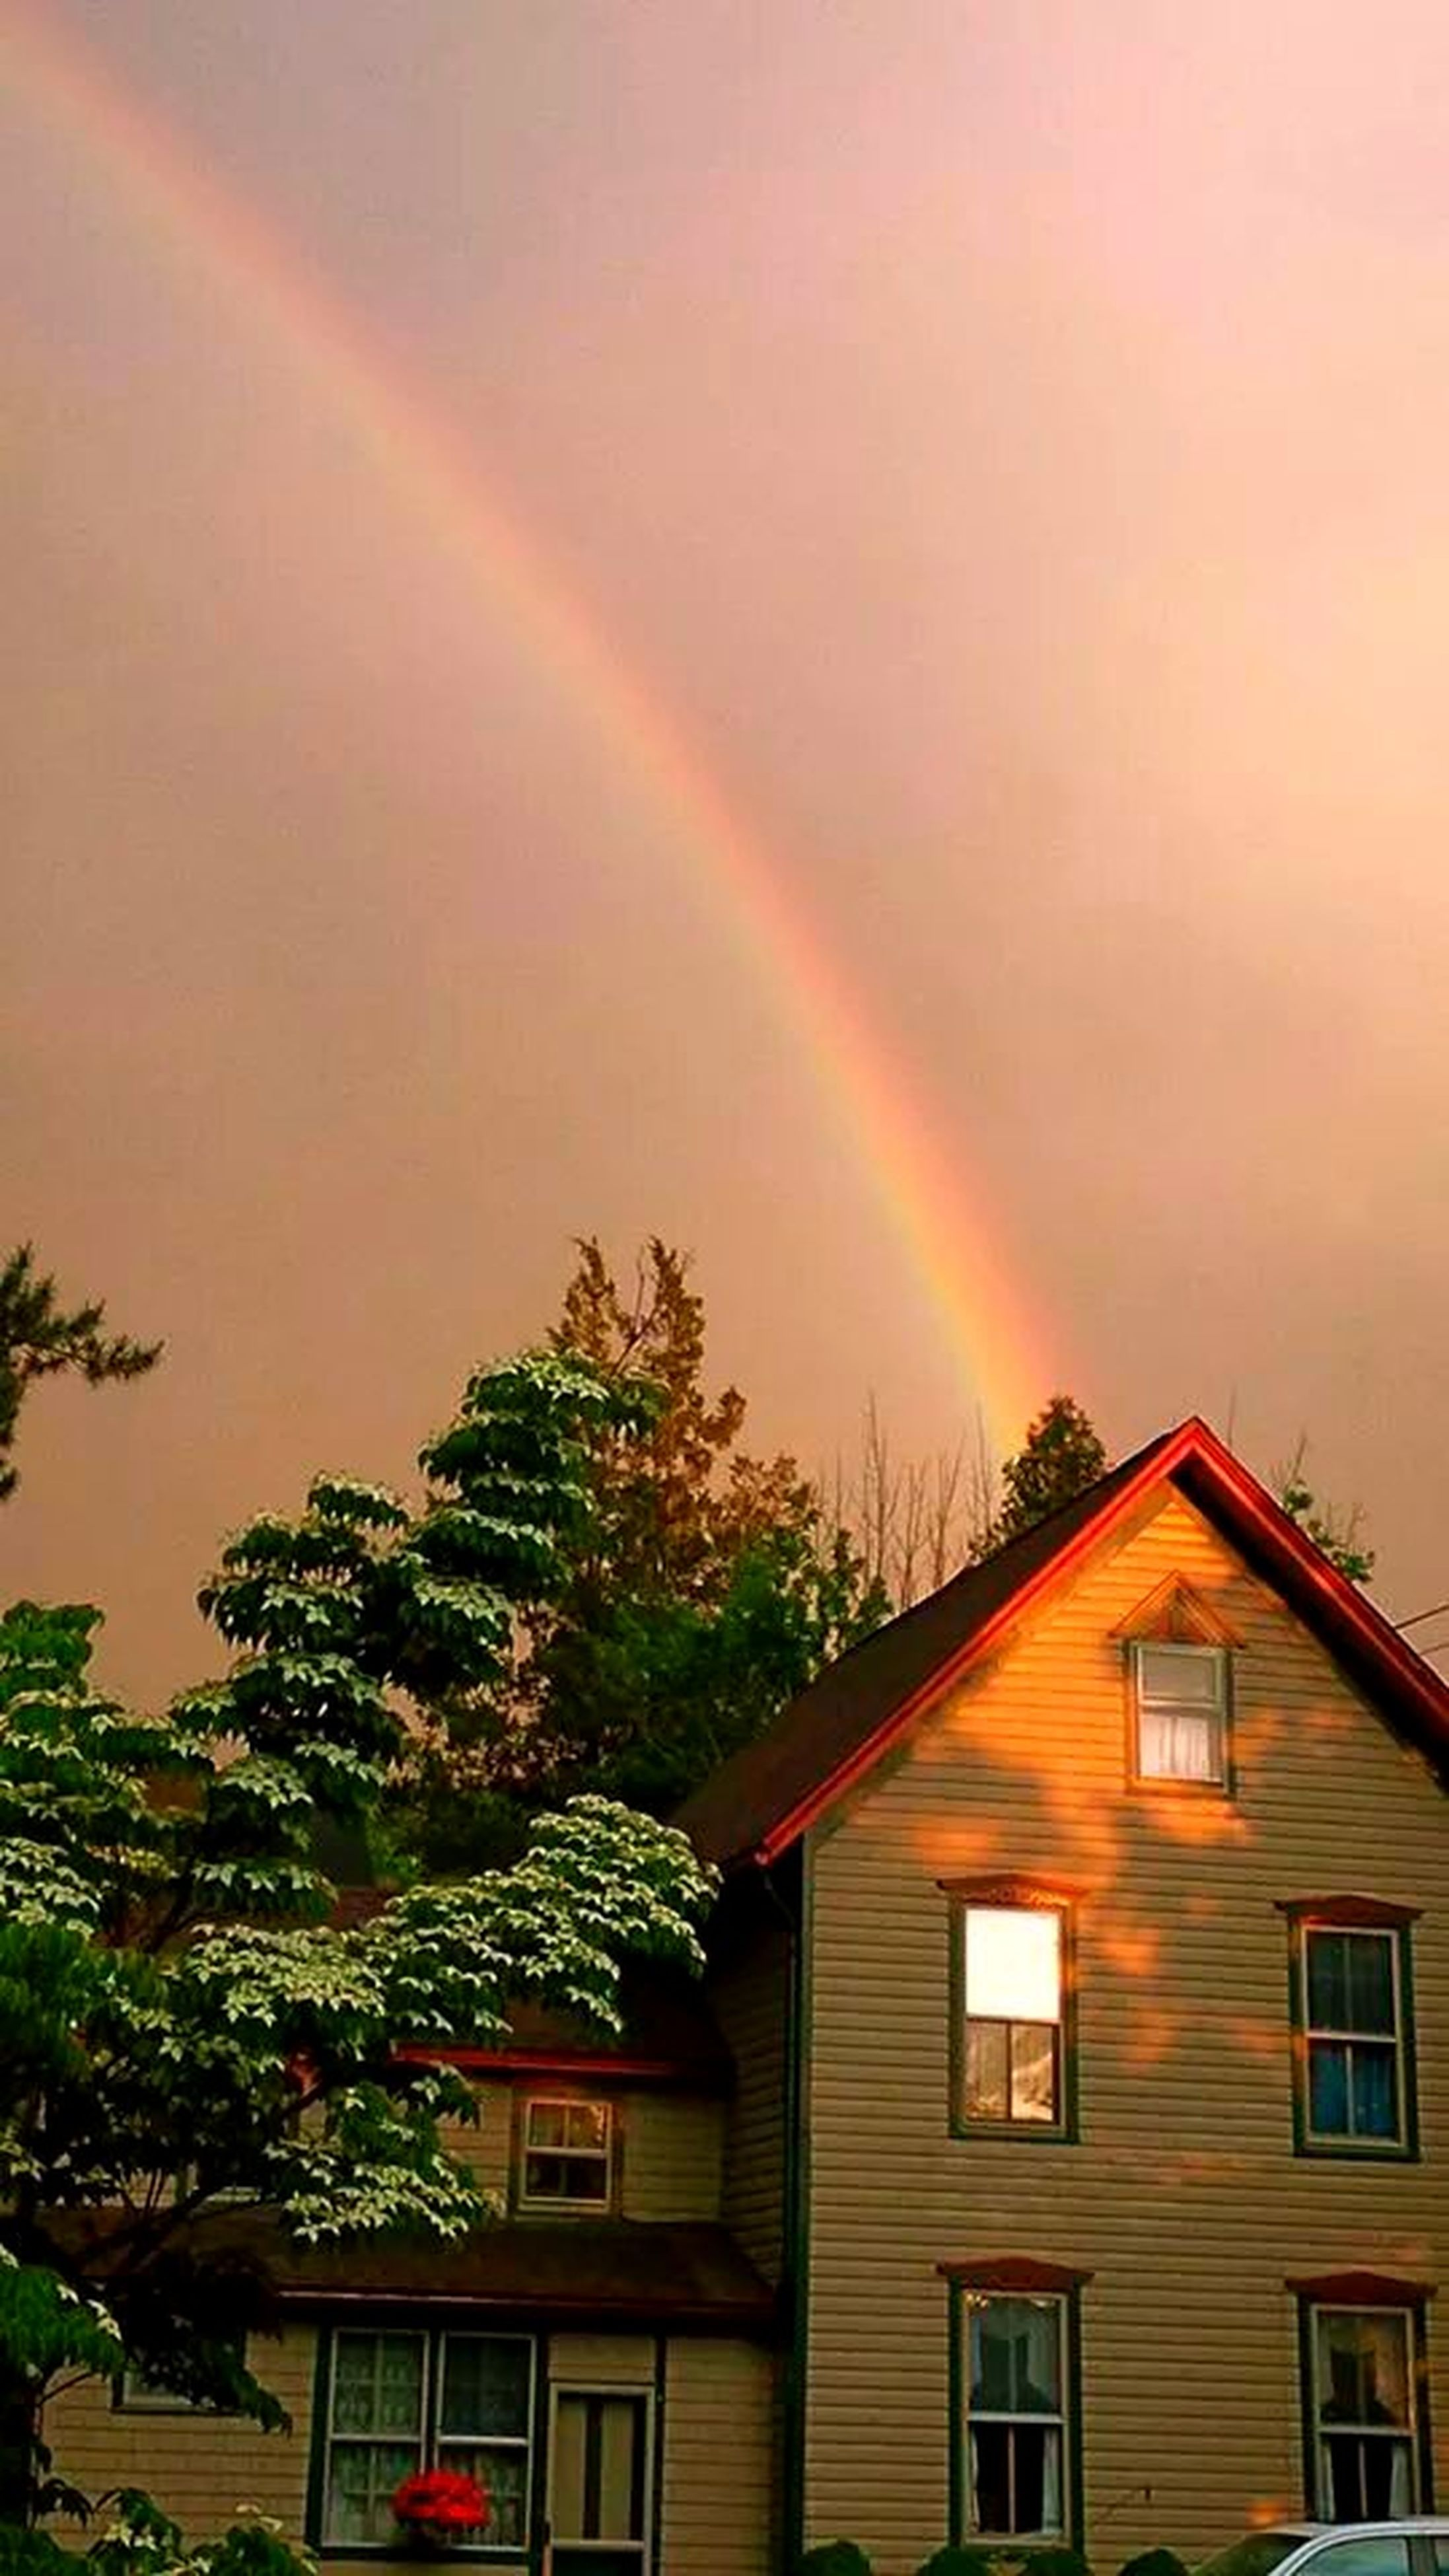 building exterior, architecture, built structure, house, tree, residential structure, sky, residential building, rainbow, low angle view, sunset, high section, nature, roof, growth, beauty in nature, cloud - sky, outdoors, no people, multi colored